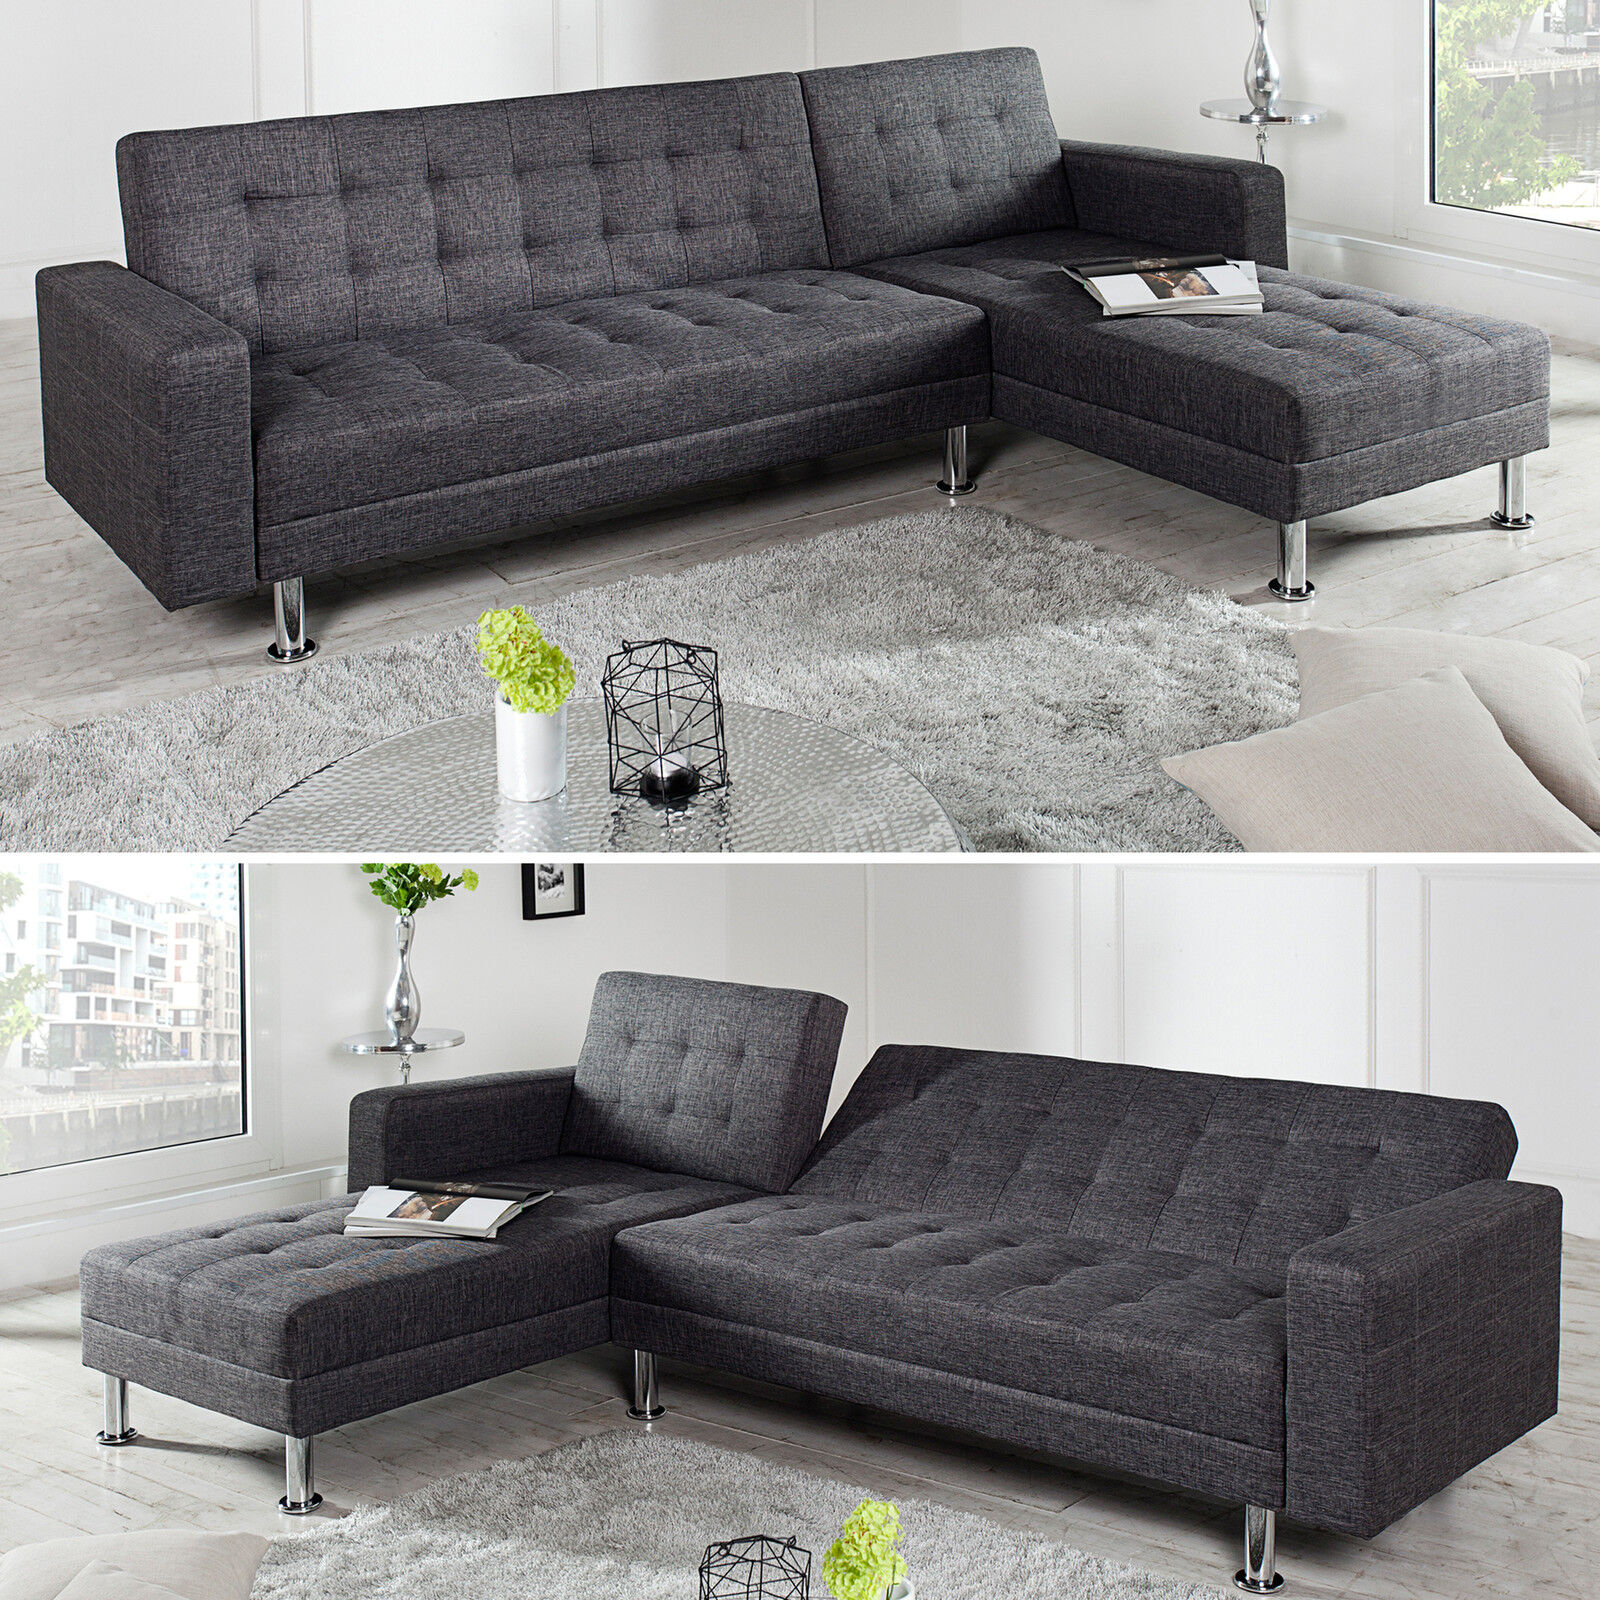 ecksofa chaise lounge mit schlaffunktion farbwahl beidseitig aufbaubar couch eur 389 95. Black Bedroom Furniture Sets. Home Design Ideas